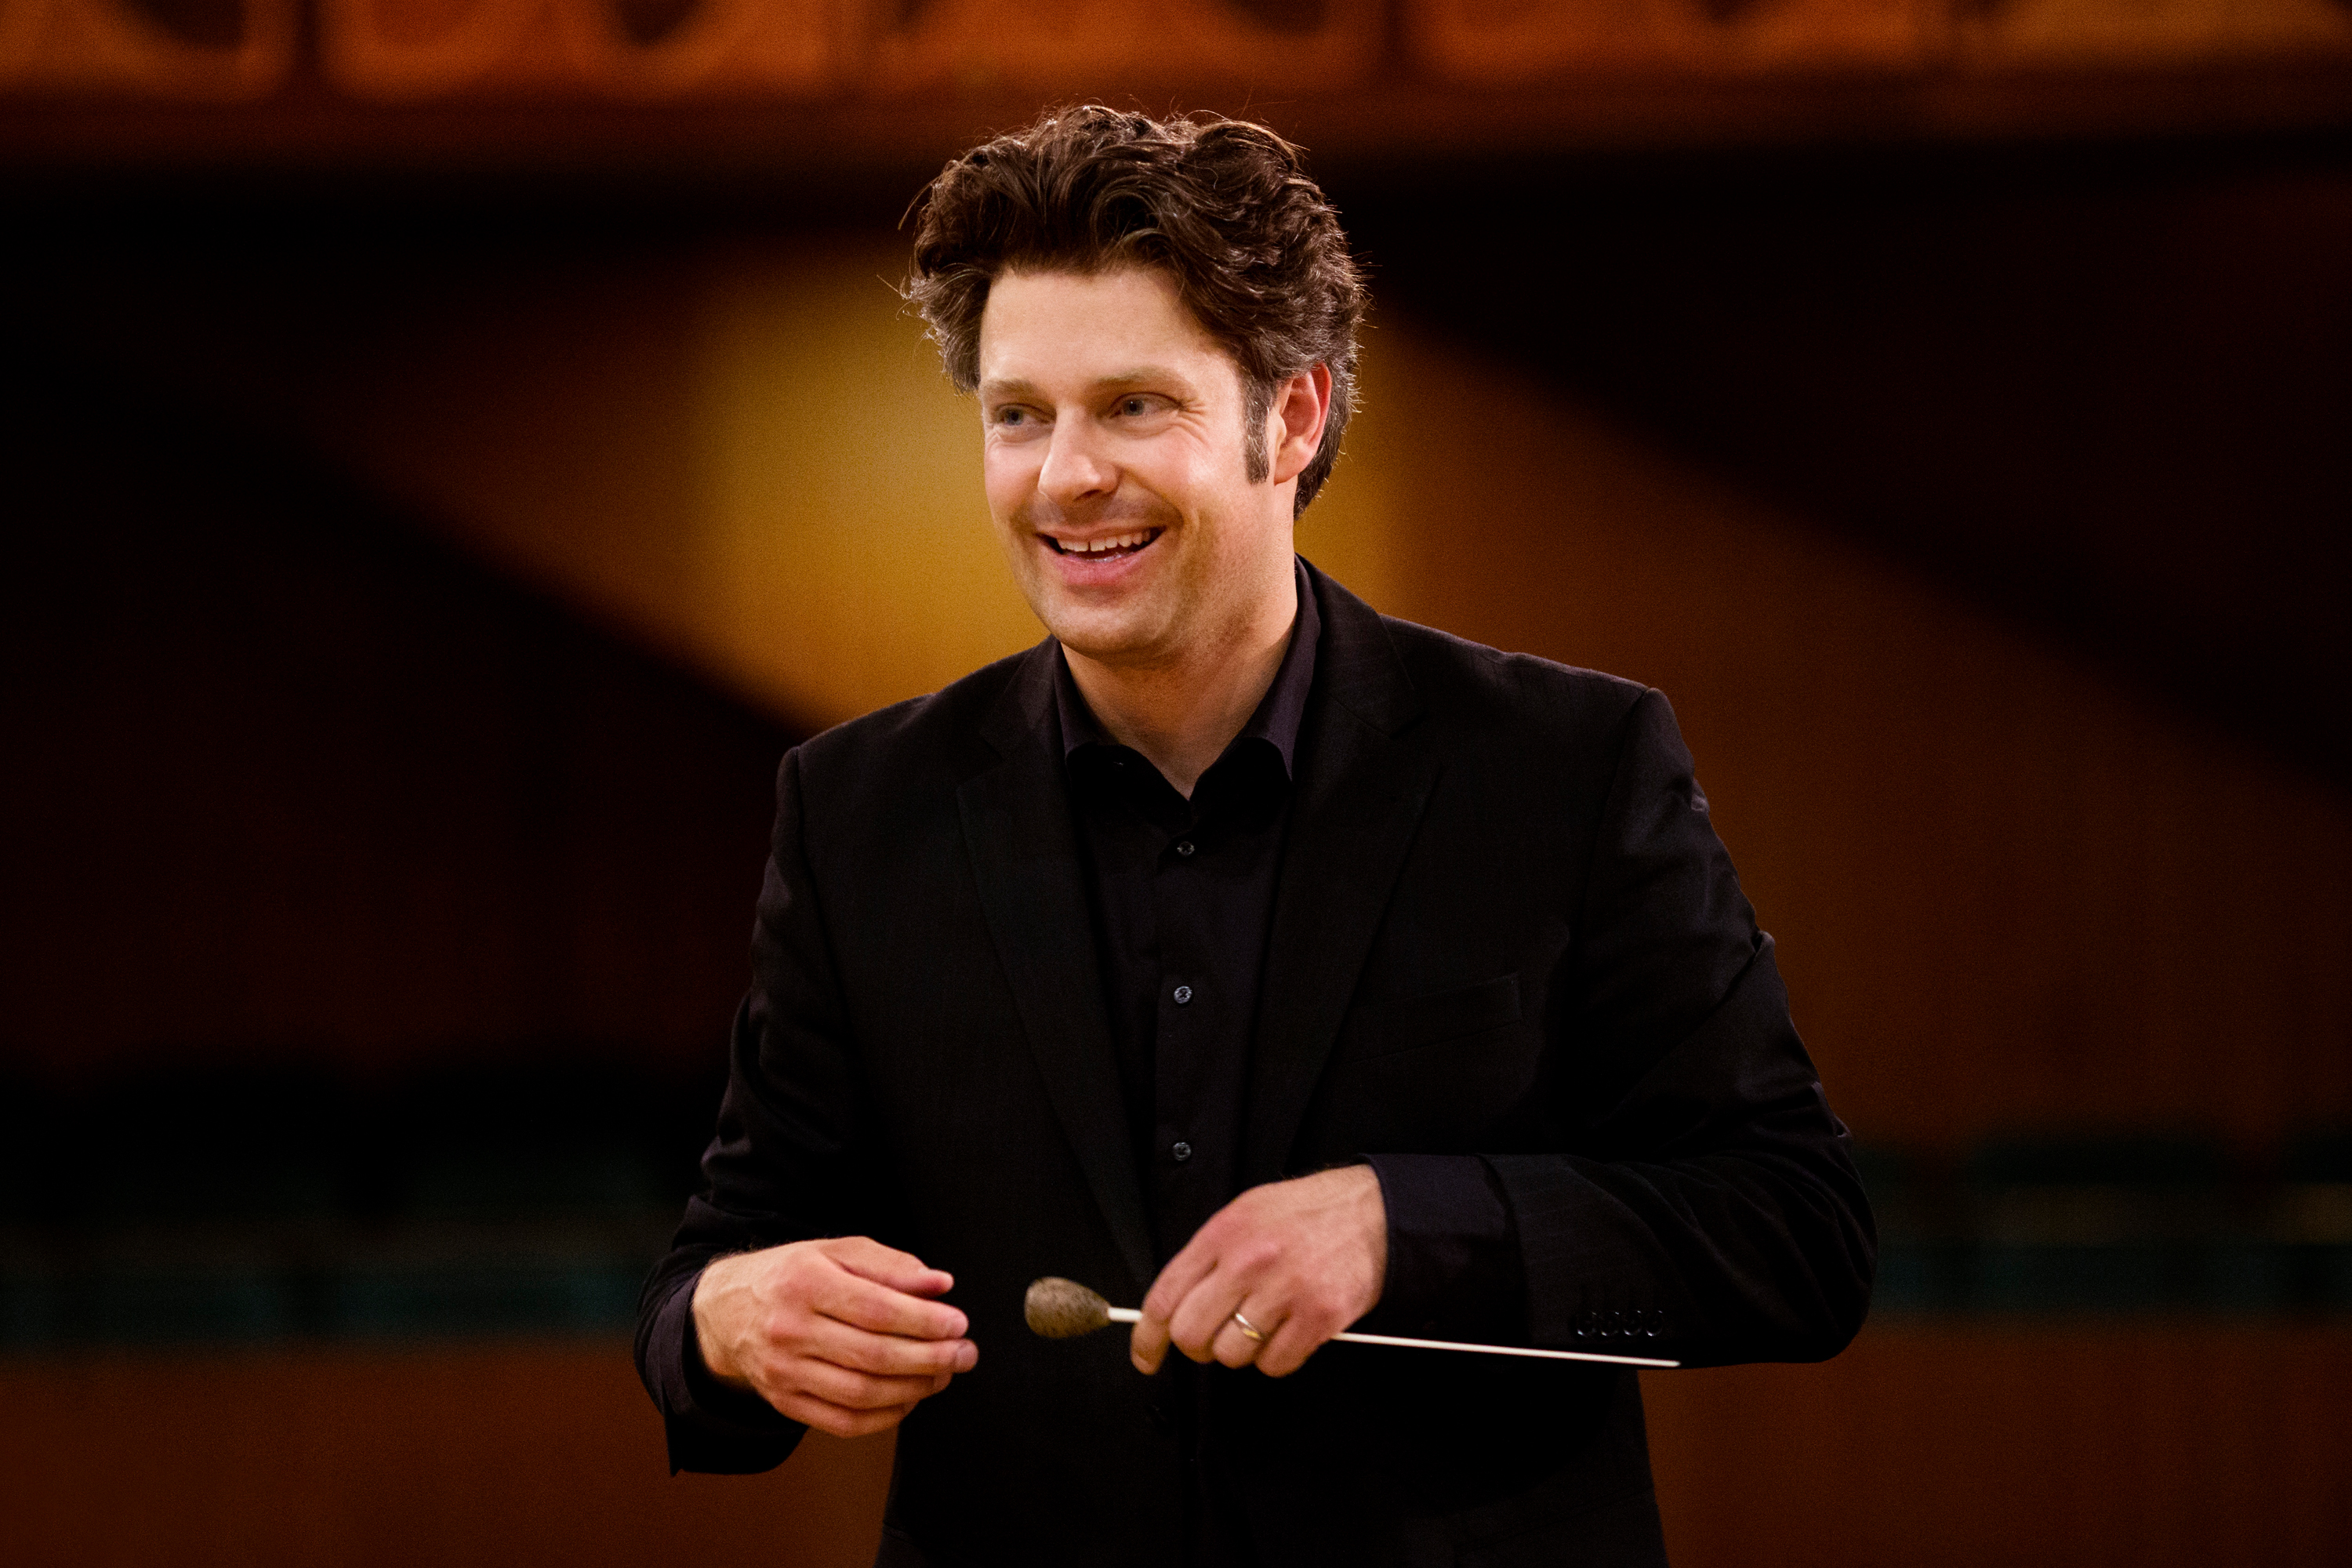 Joseph Bastian conducts the Tiroler Symphonieorchester